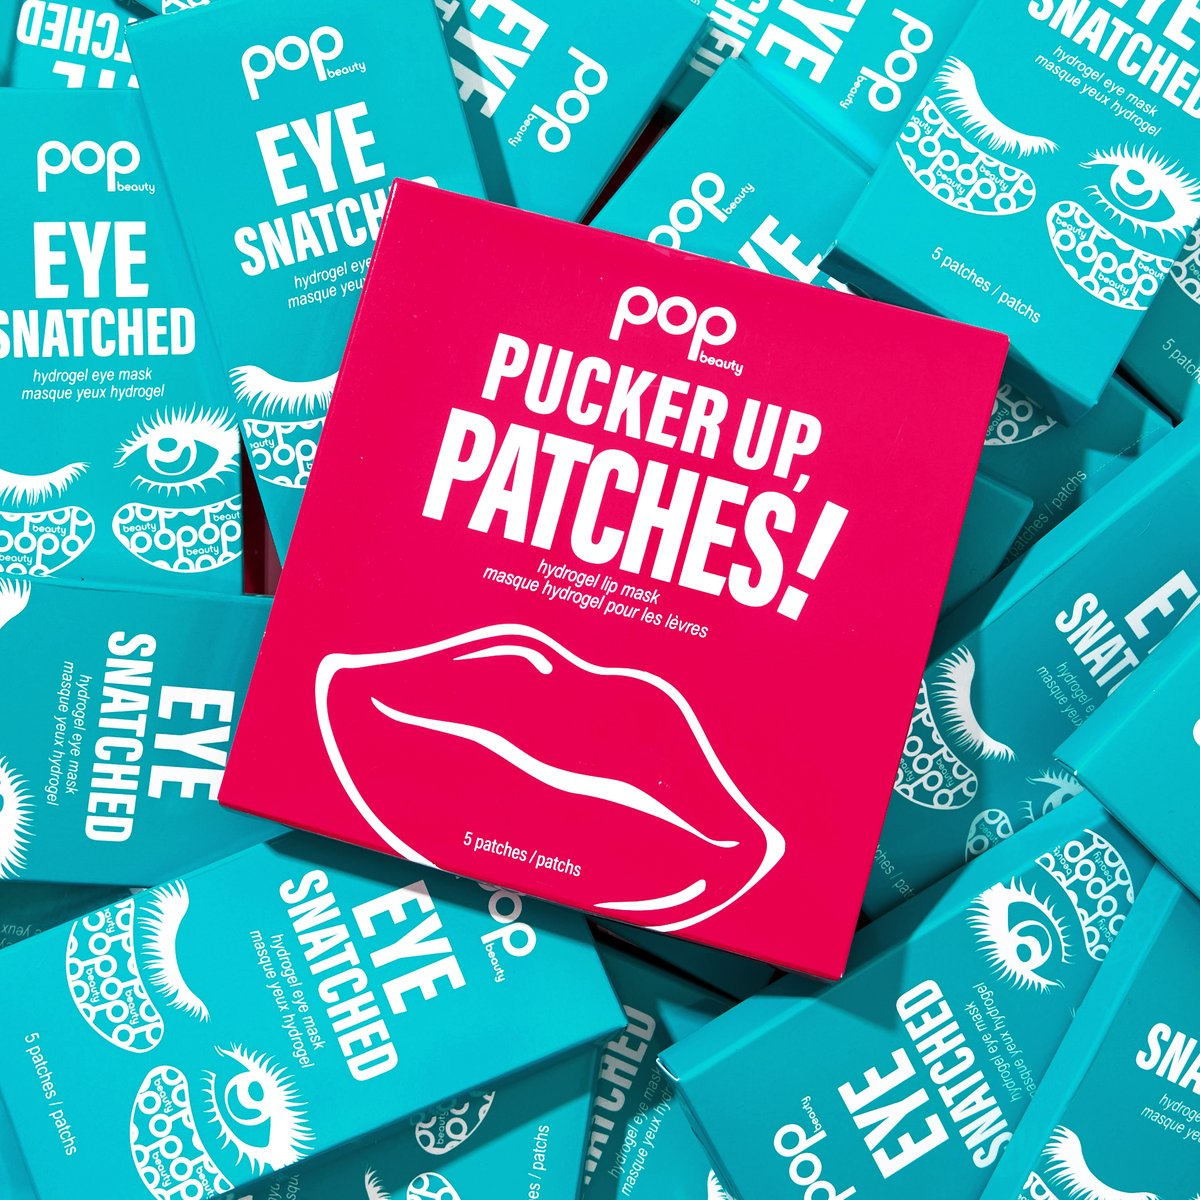 Patches, please!😉 #MakeItPOP with Pucker Up, Patches! & Eye Snatched! #POPbeauty #PuckerUpPatches #EyeSnatched https://t.co/b5kuT5kIgV